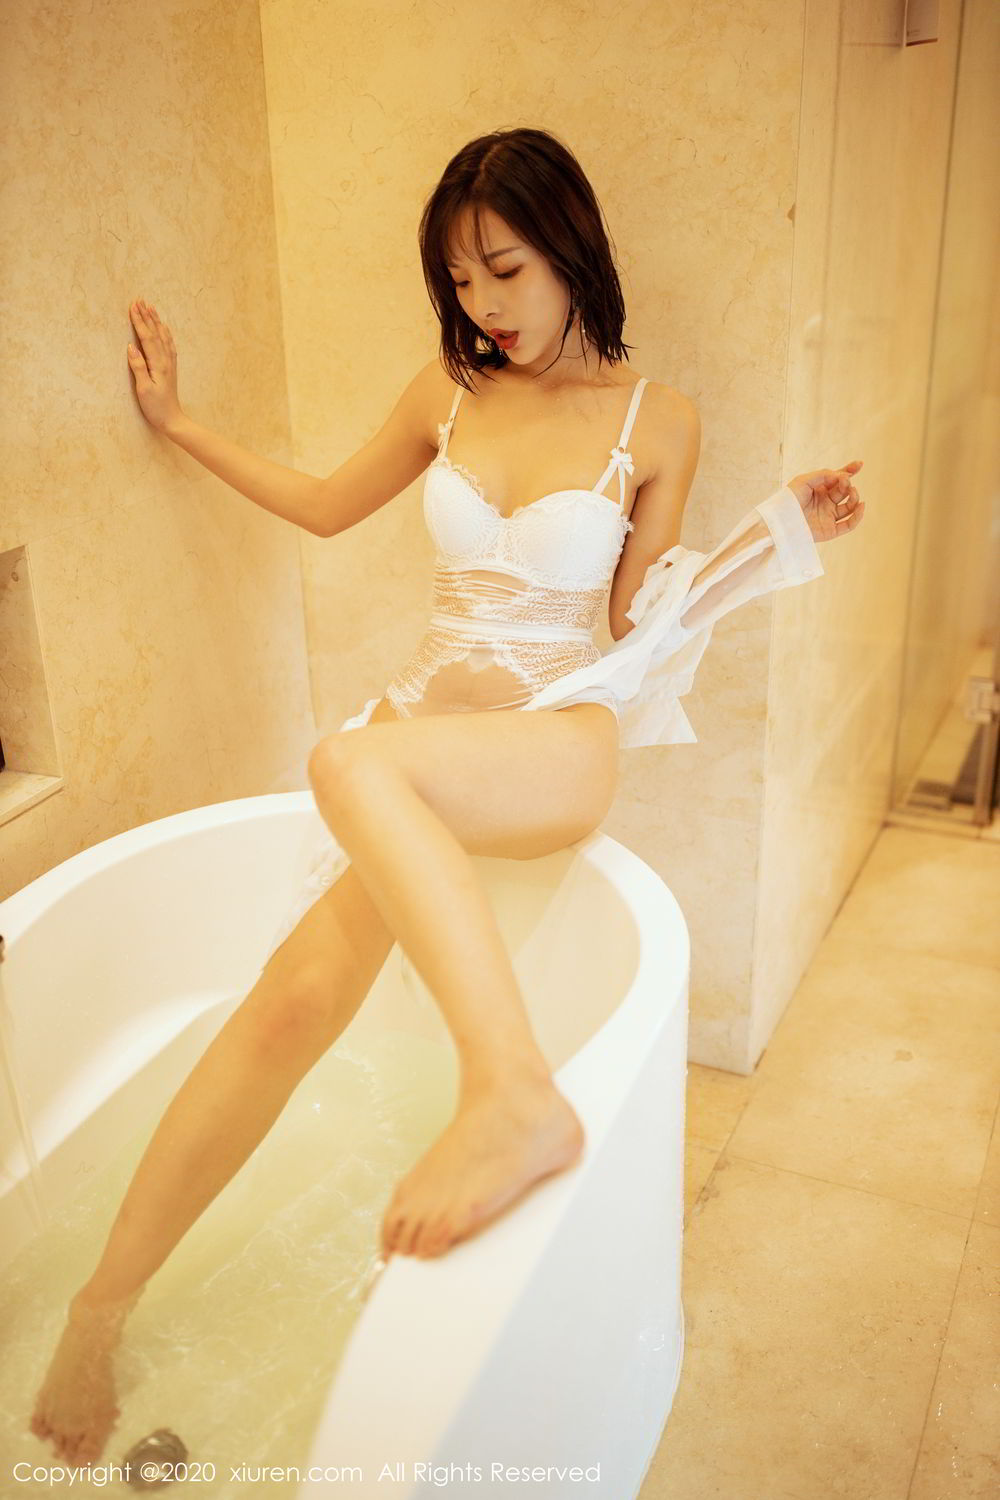 [XiuRen] Vol.2158 Chen Xiao Miao 39P, Bathroom, Chen Xiao Miao, Tall, Wet, Xiuren